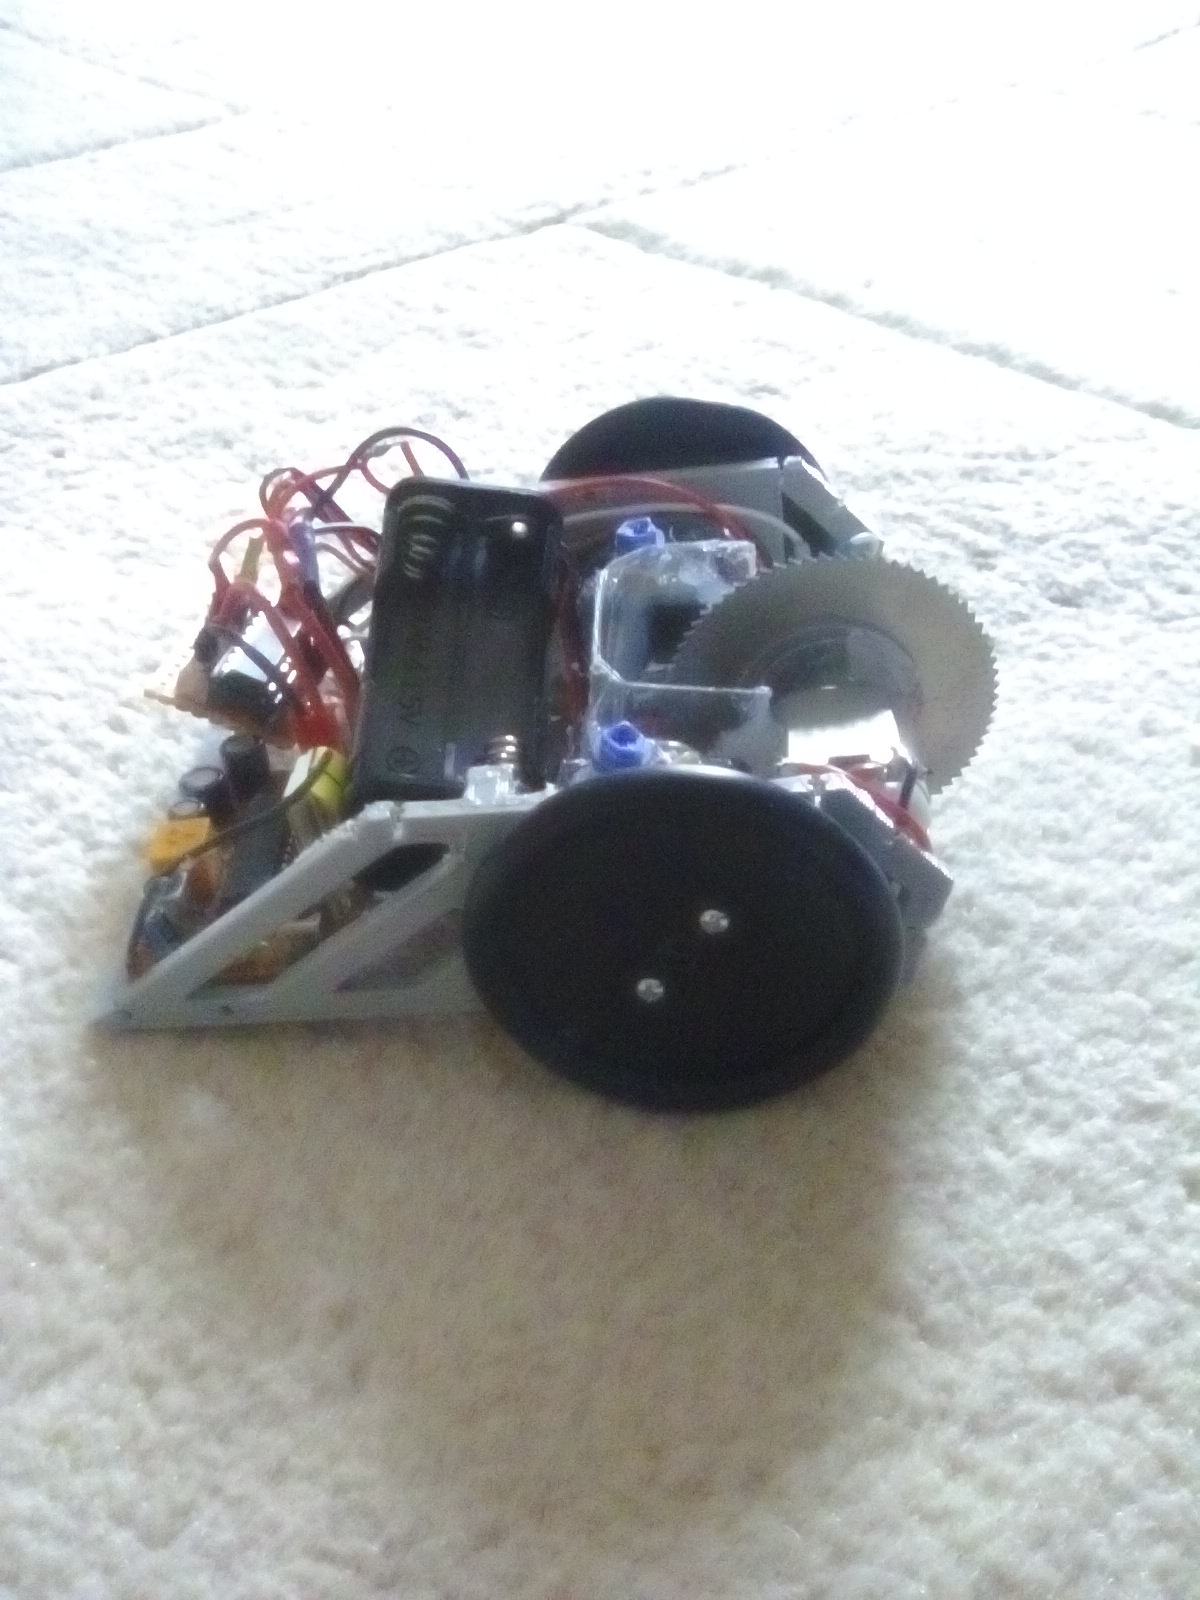 ant weight robot with spinning disk weapon